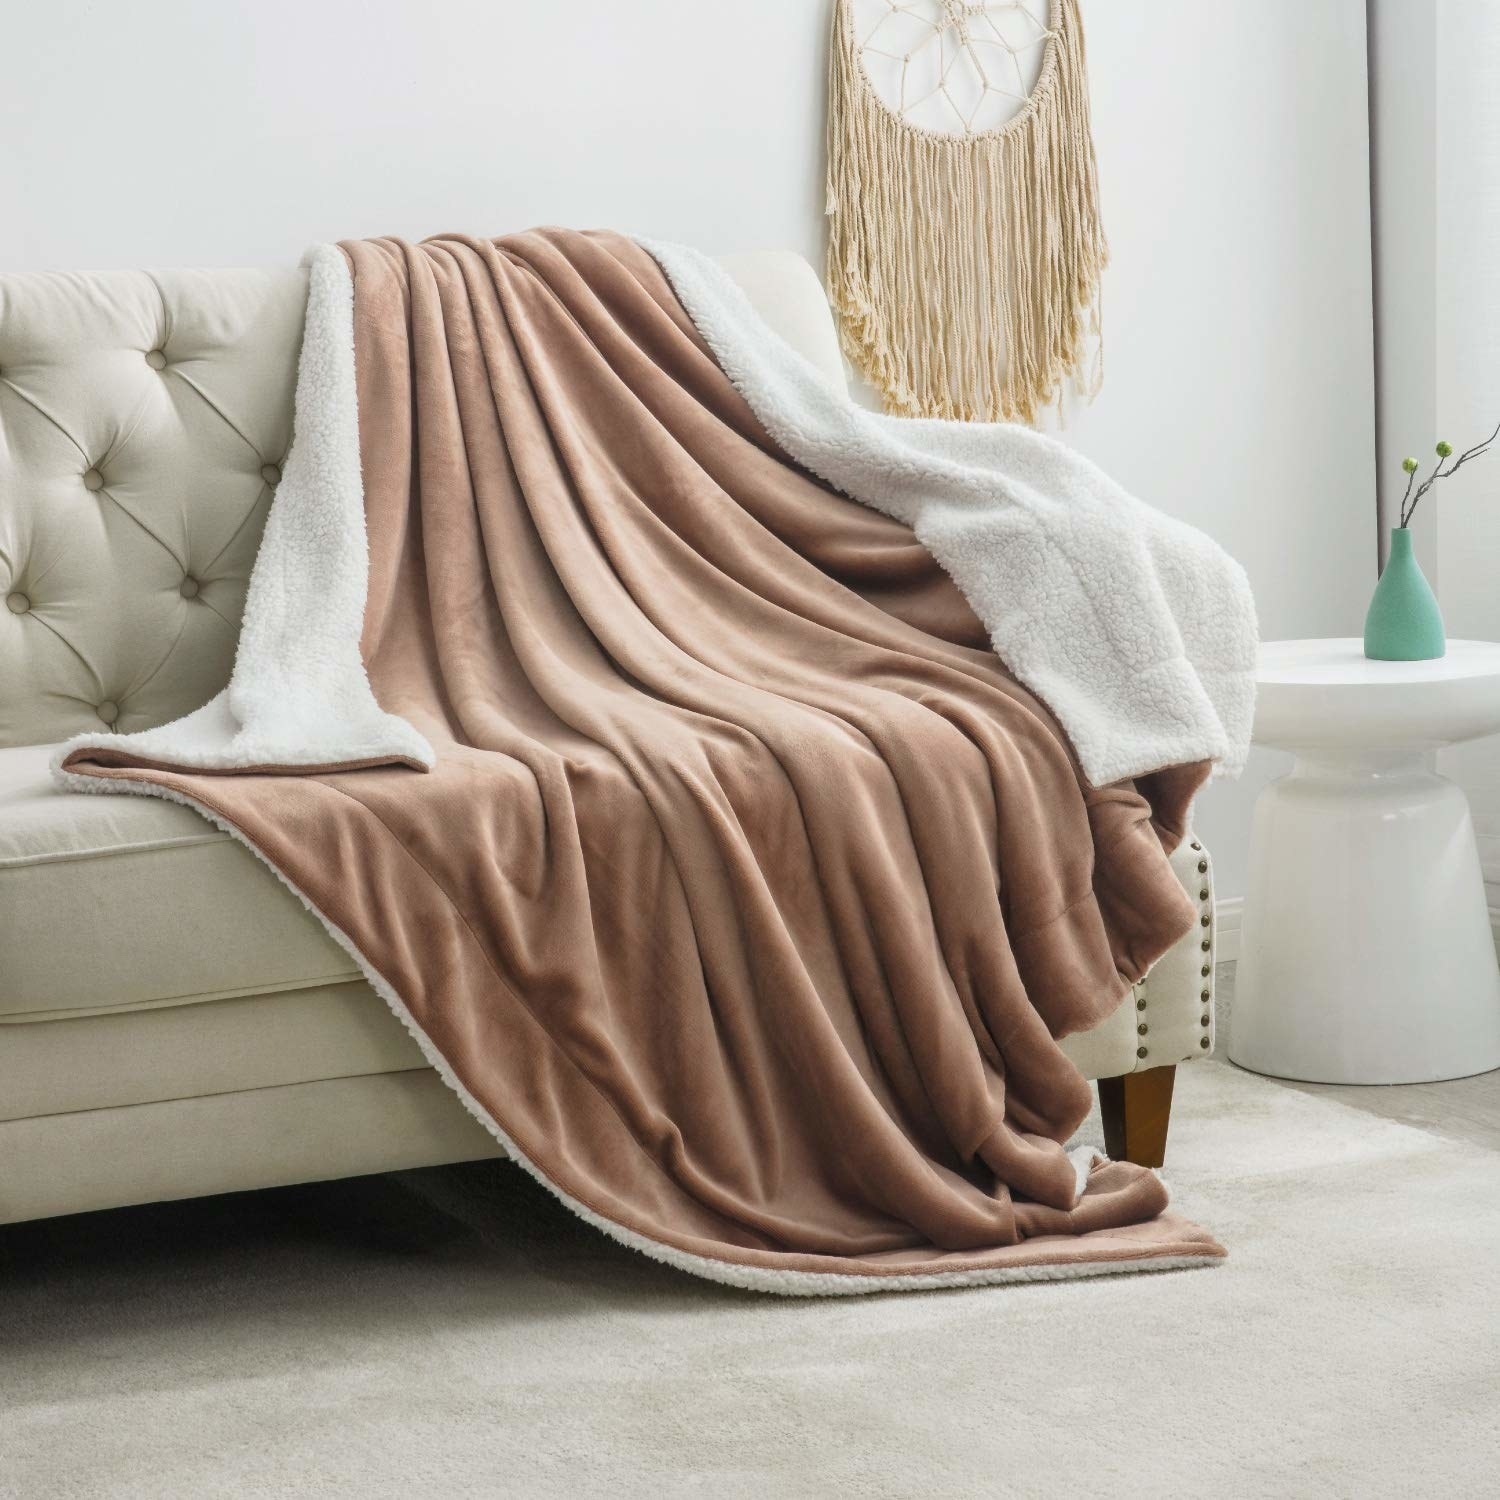 the blanket in brown draped over a couch